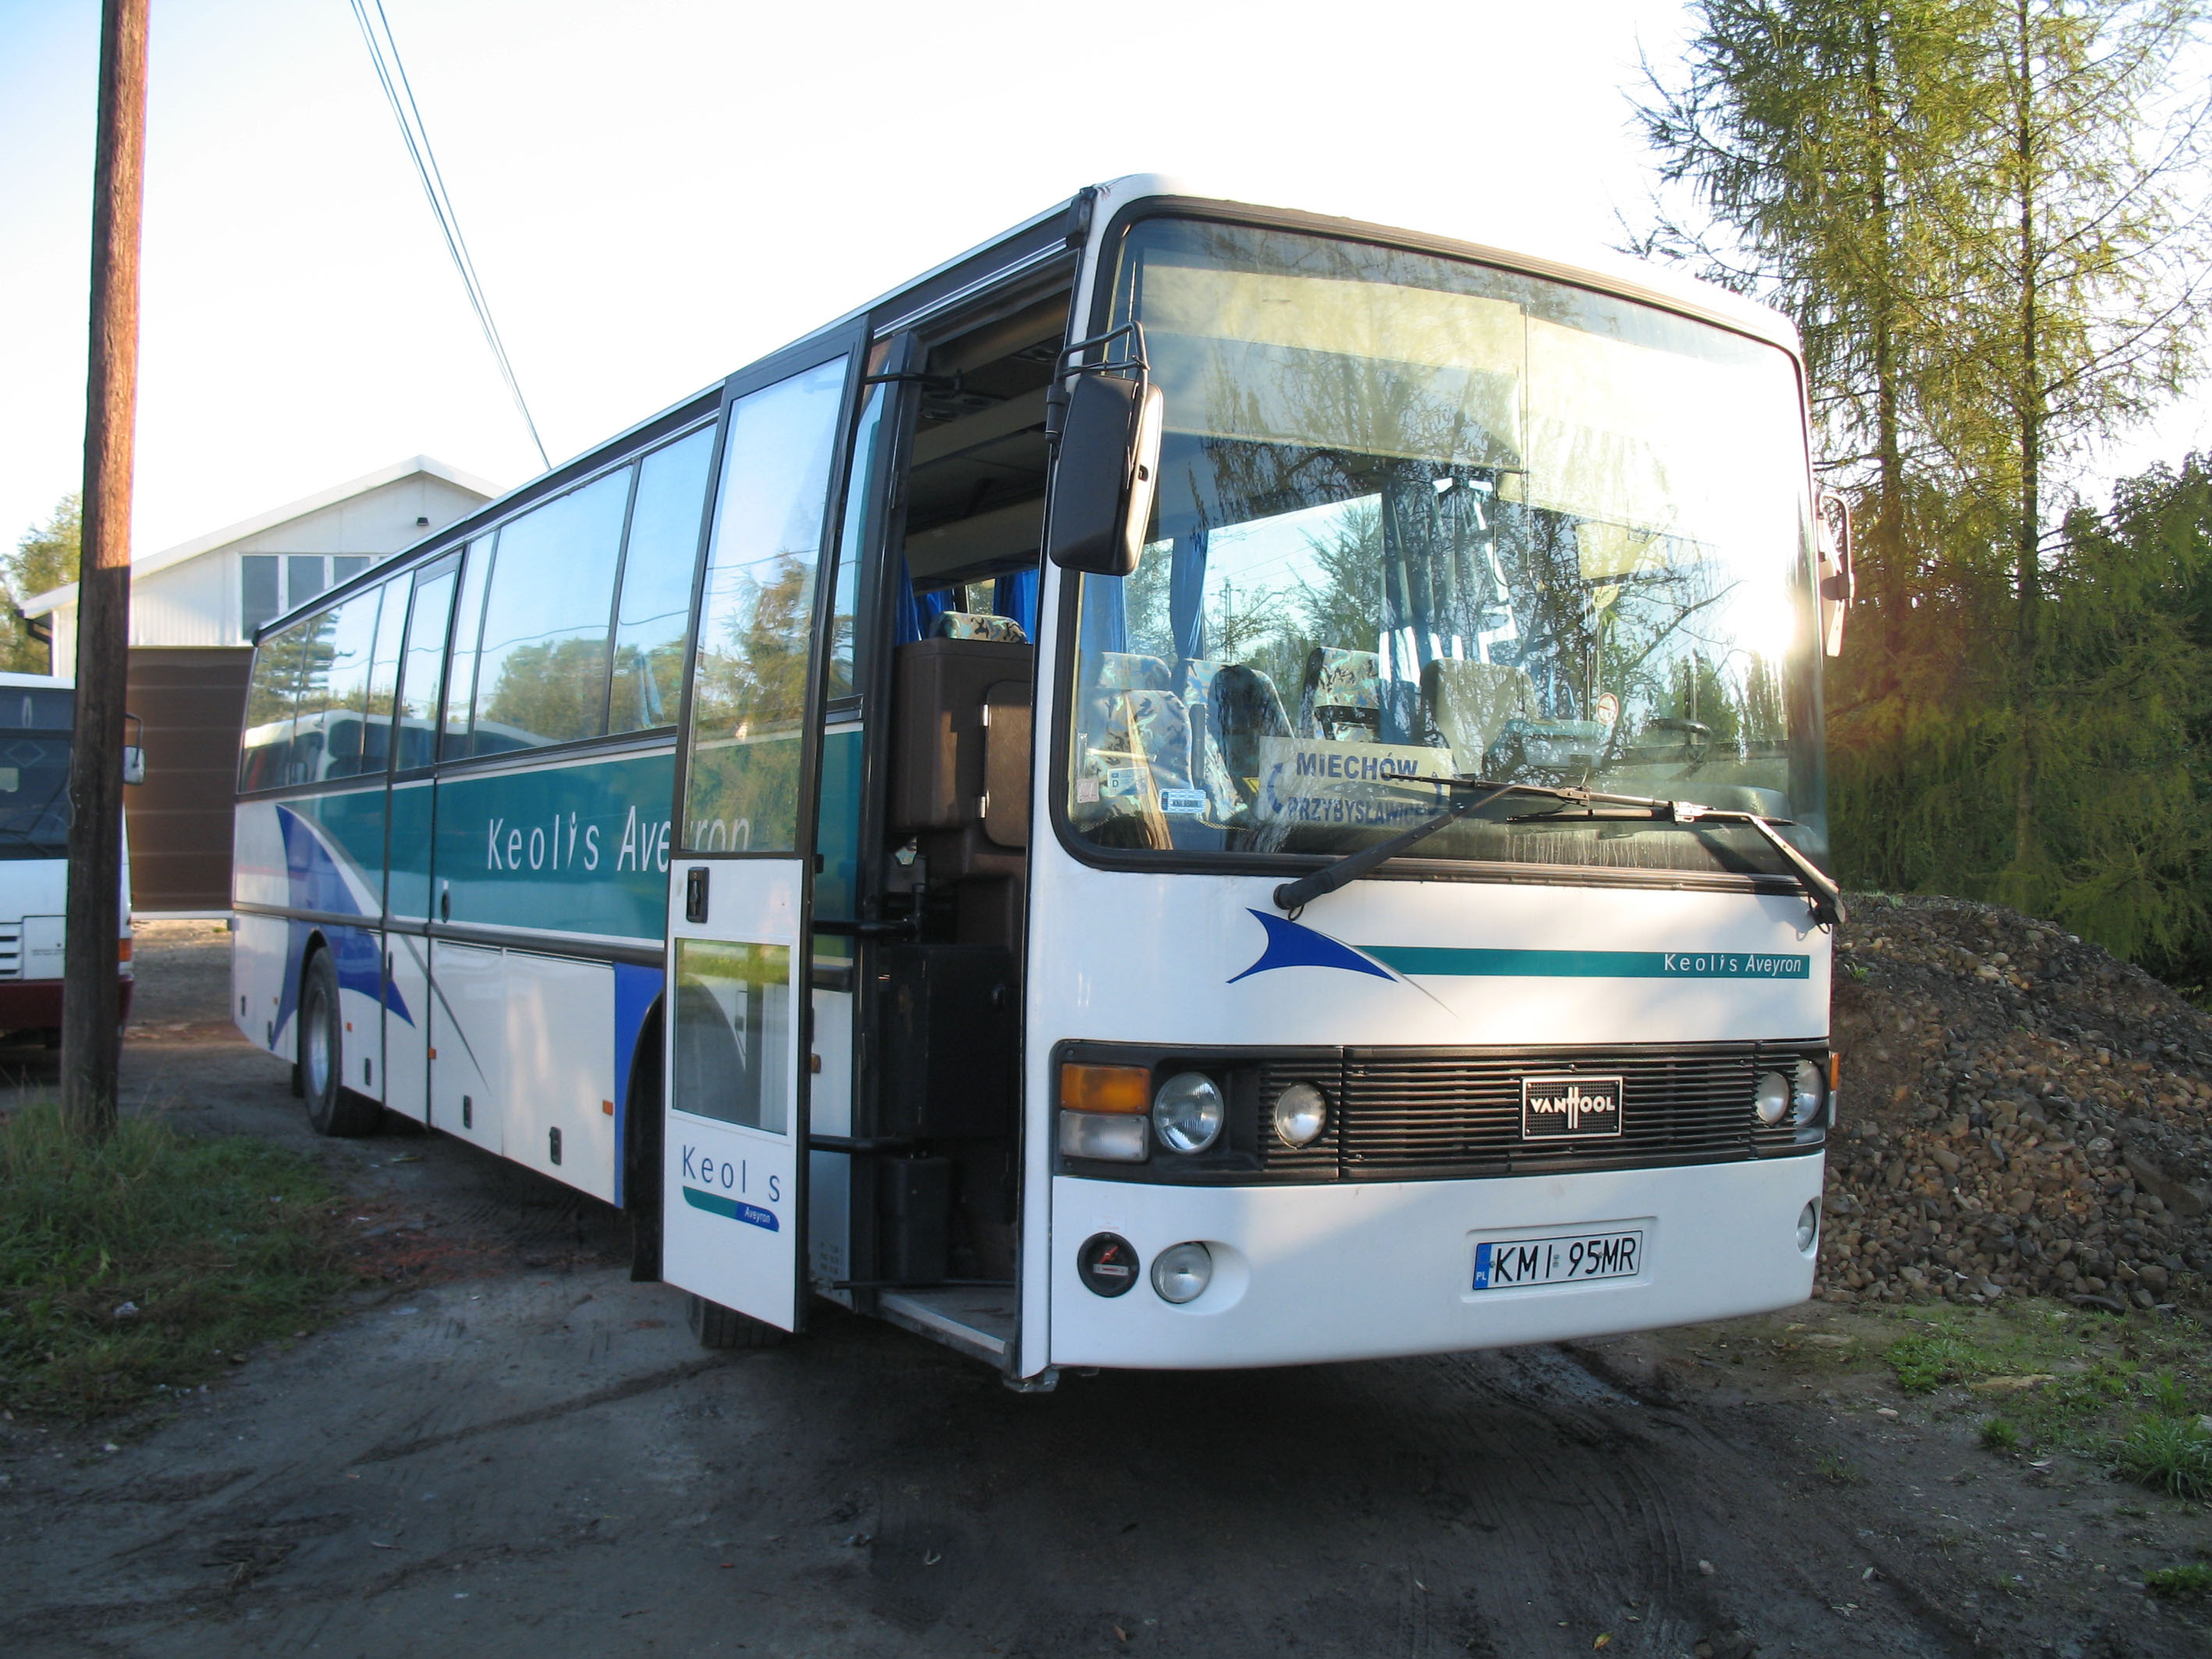 Vanhool bus photo - 4